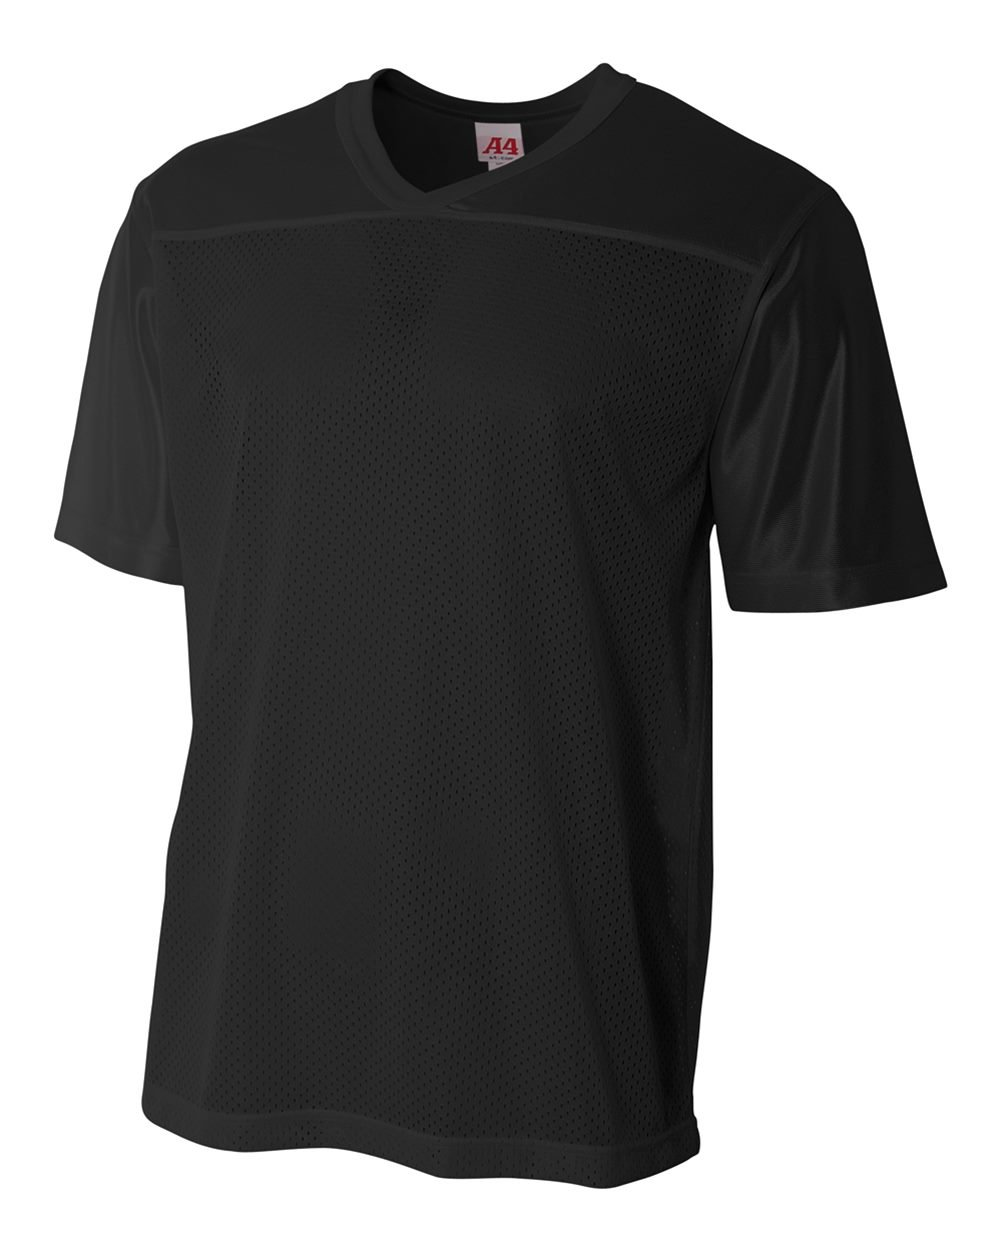 Adult Black 2X (Blank Back) Moisture Wicking V-Neck Football Jersey